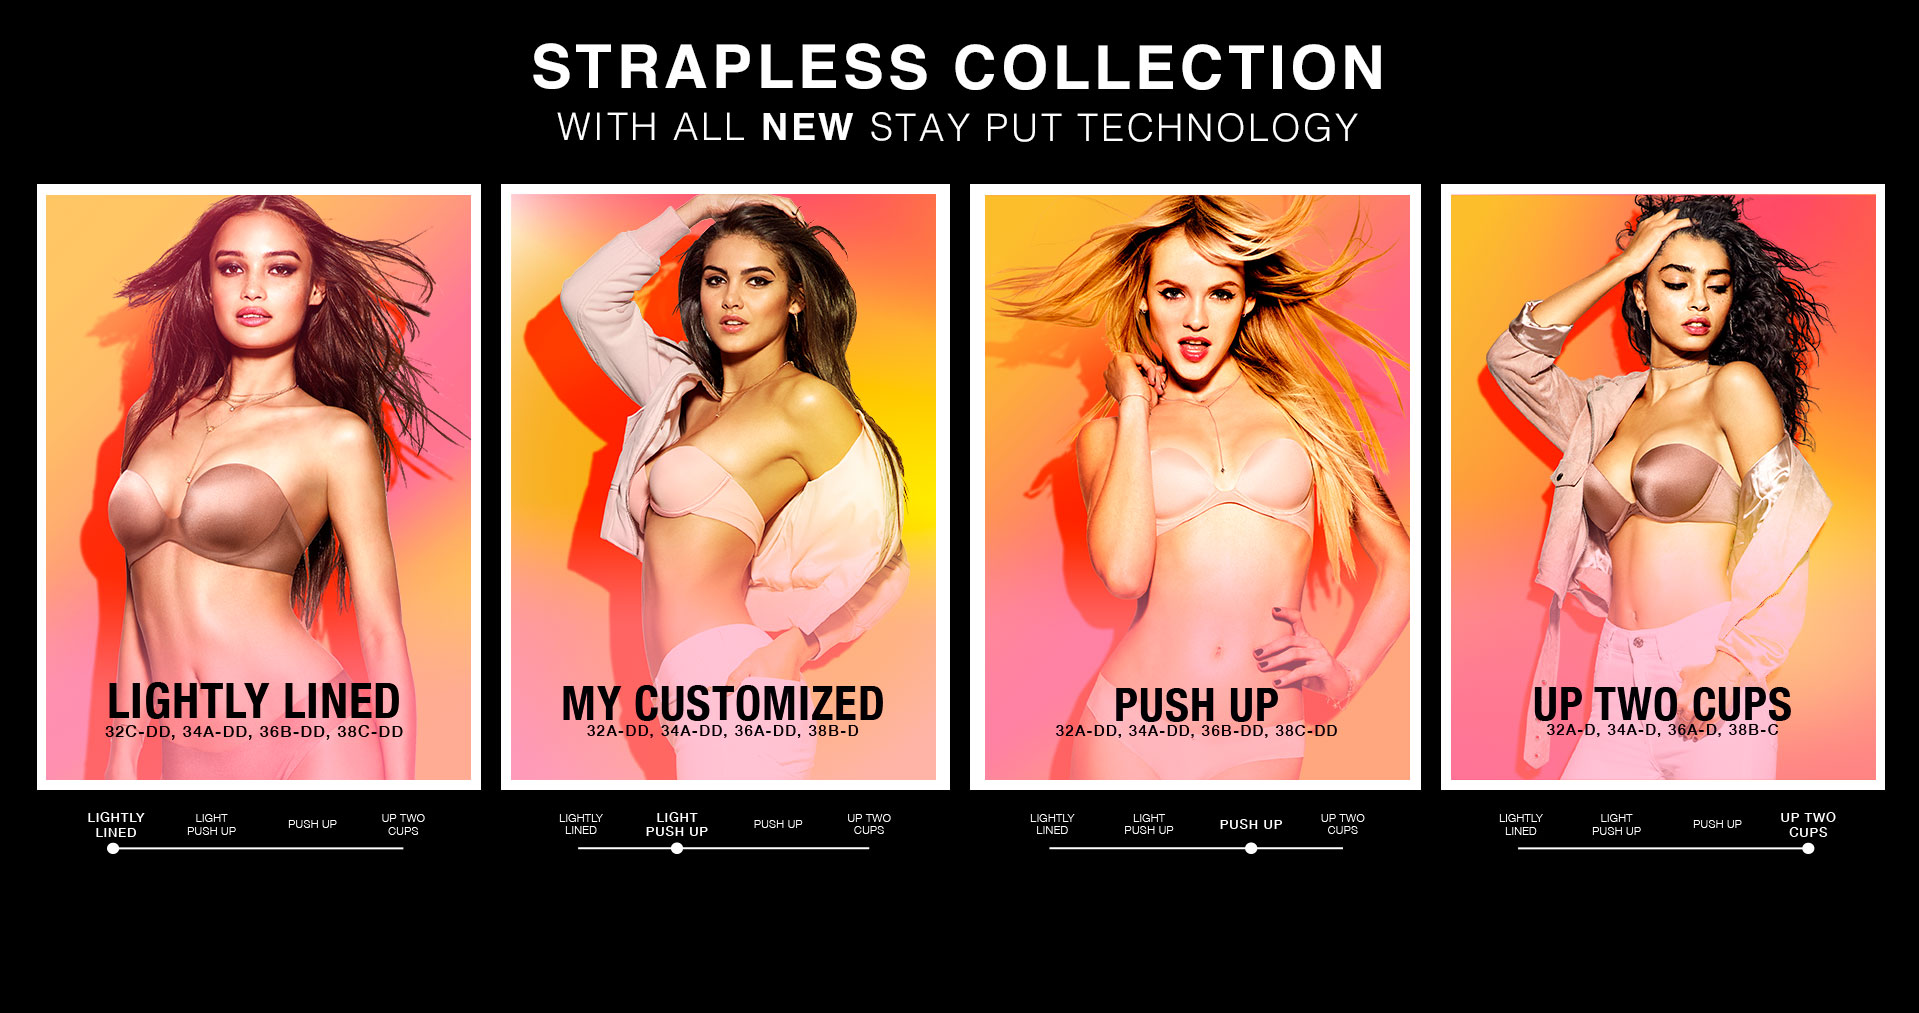 Strapless Collection. With all NEW stay put technology. Lightly lined 32C-DD, 34A-DD, 36B-DD, 38C-DD. Lightly lined. My customized 32A-DD, 34A-DD, 36A-DD, 38B-D. My Customized. Push up 32A-DD, 34A-DD, 36B-DD, 38C-DD. Push up. Up two cups. 32A-D, 34A-D, 36A-D, 38B-C.